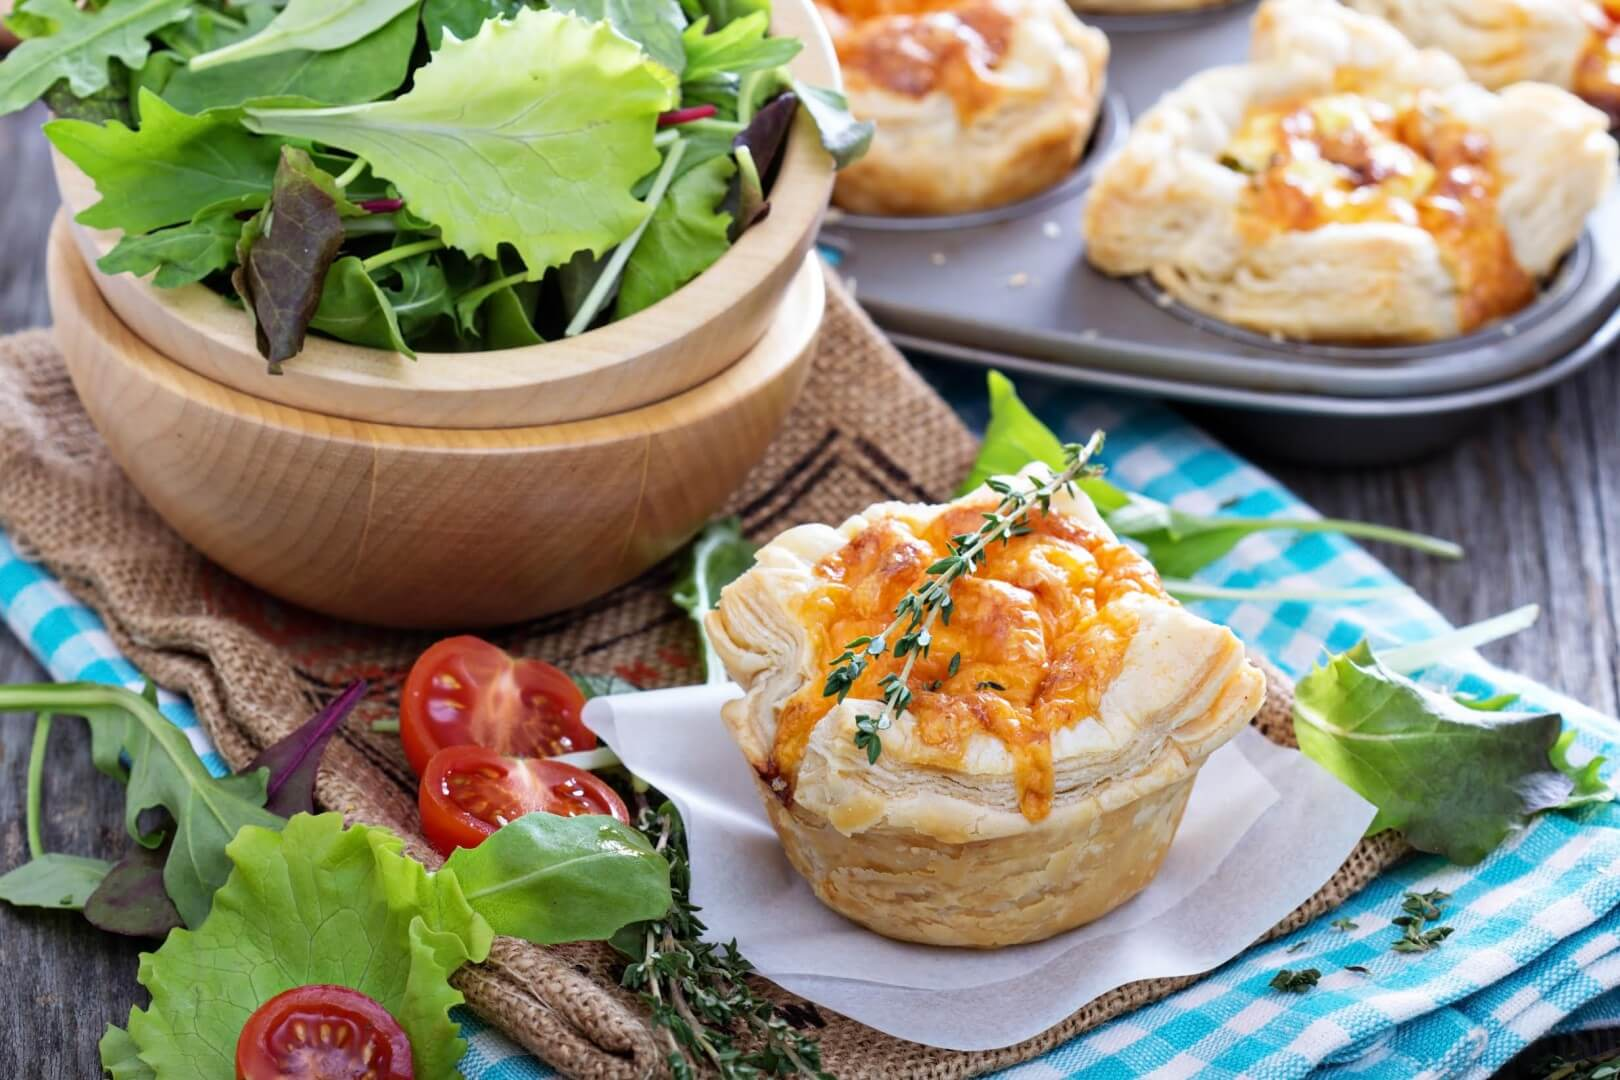 Brie and Chutney Tarts